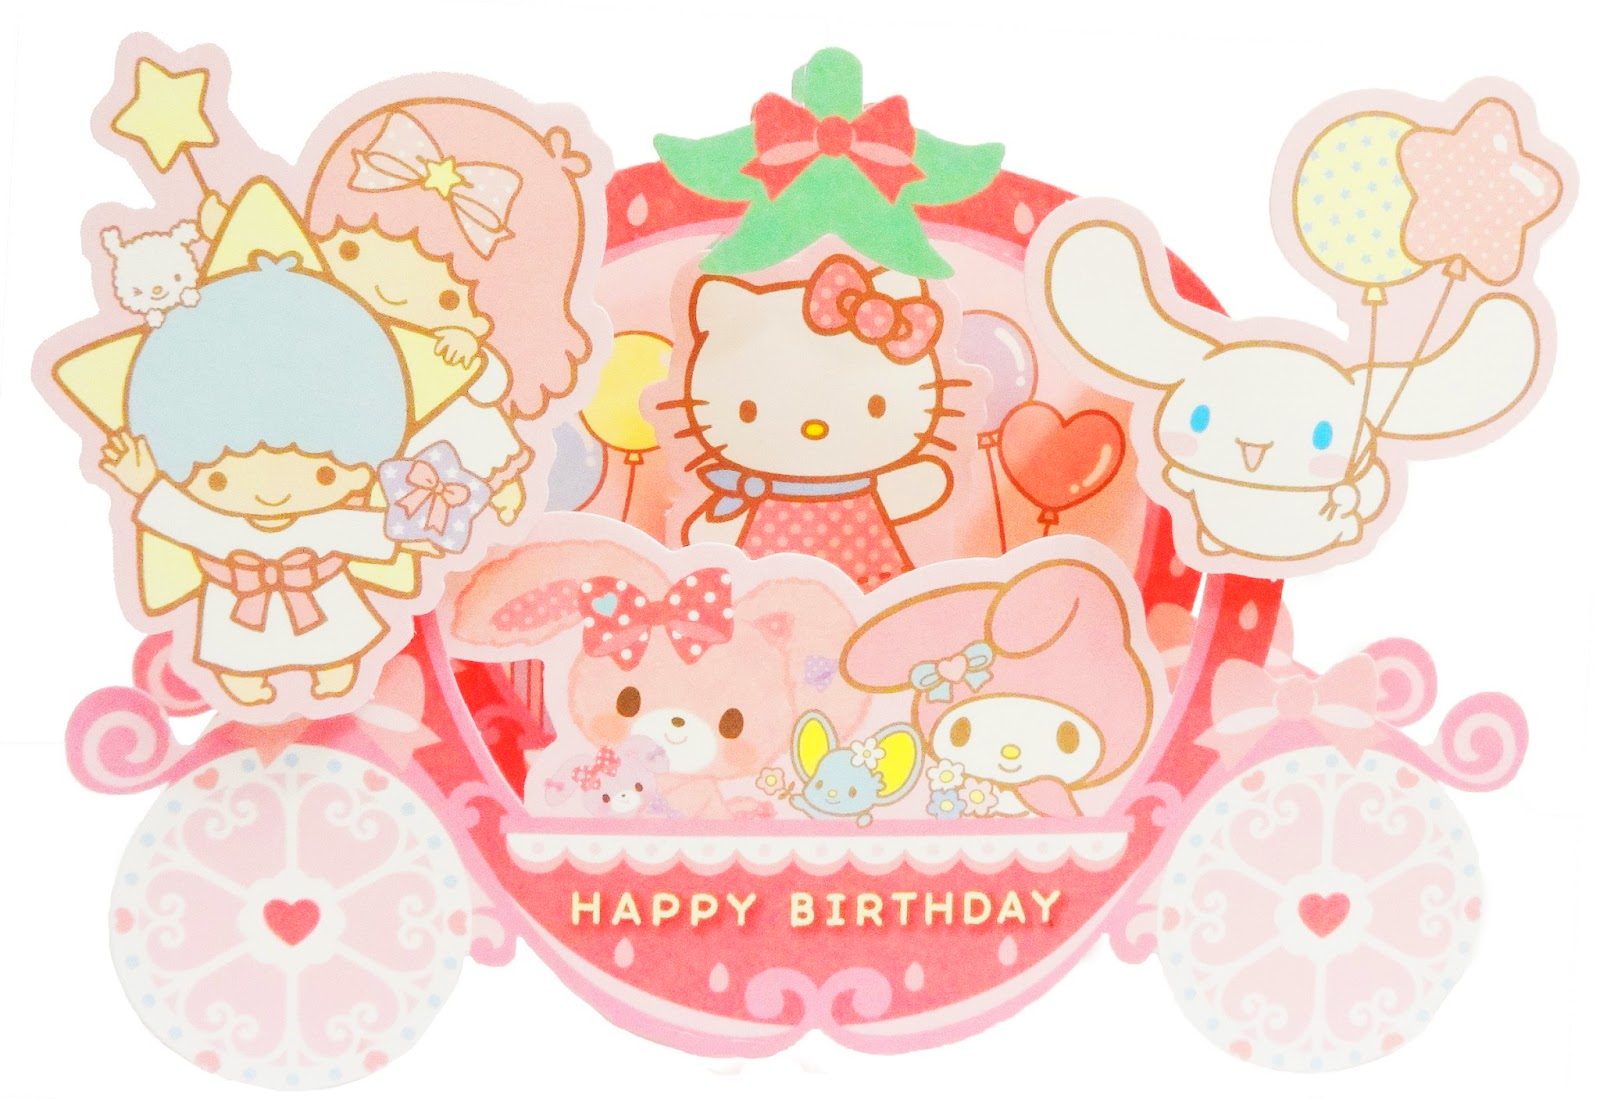 New arrival hello kitty birthday pop up greeting card miss girlie hello kitty birthday pop up greeting card m4hsunfo